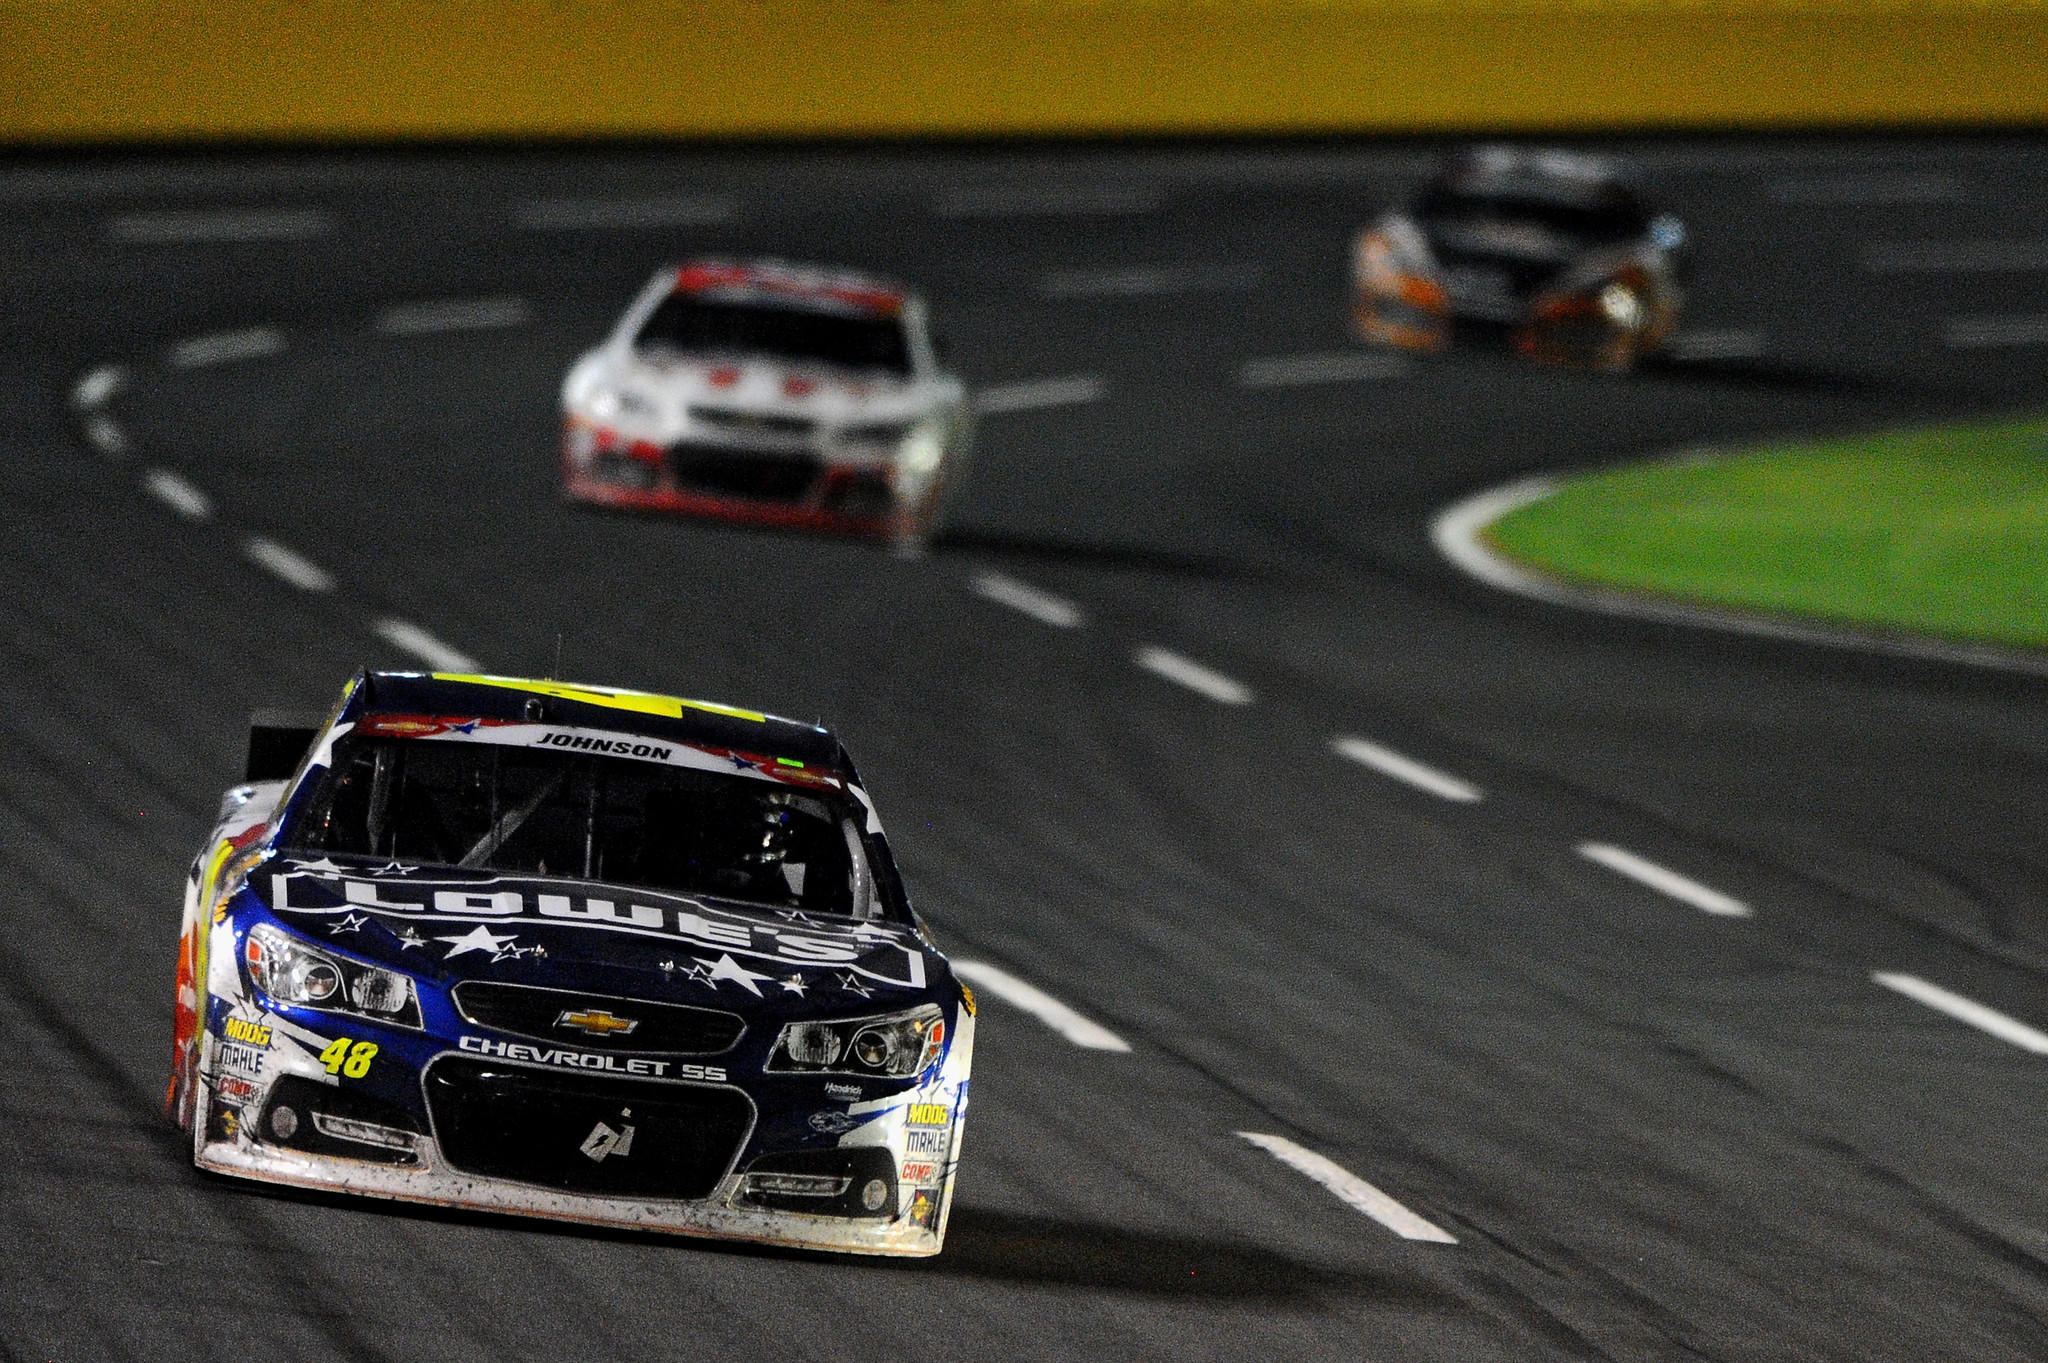 Jimmie Johnson, driver of the #48 Lowe's Patriotic Chevrolet, leads the field during the NASCAR Sprint Cup Series Coca-Cola 600 at Charlotte Motor Speedway on May 25, 2014 in Charlotte, North Carolina.